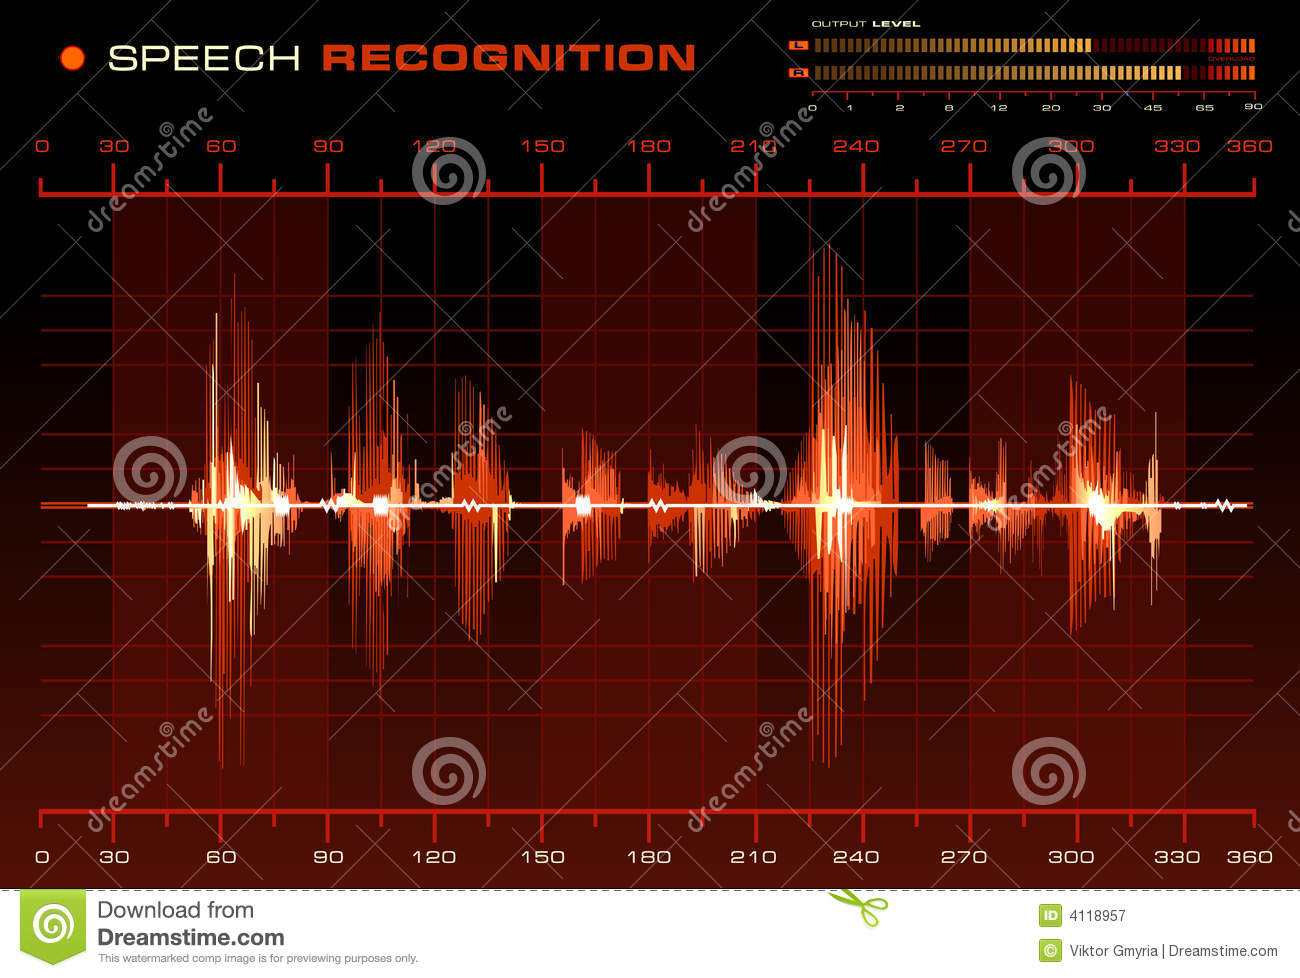 Speech Recognition Royalty Free Stock Photography - Image: 4118957